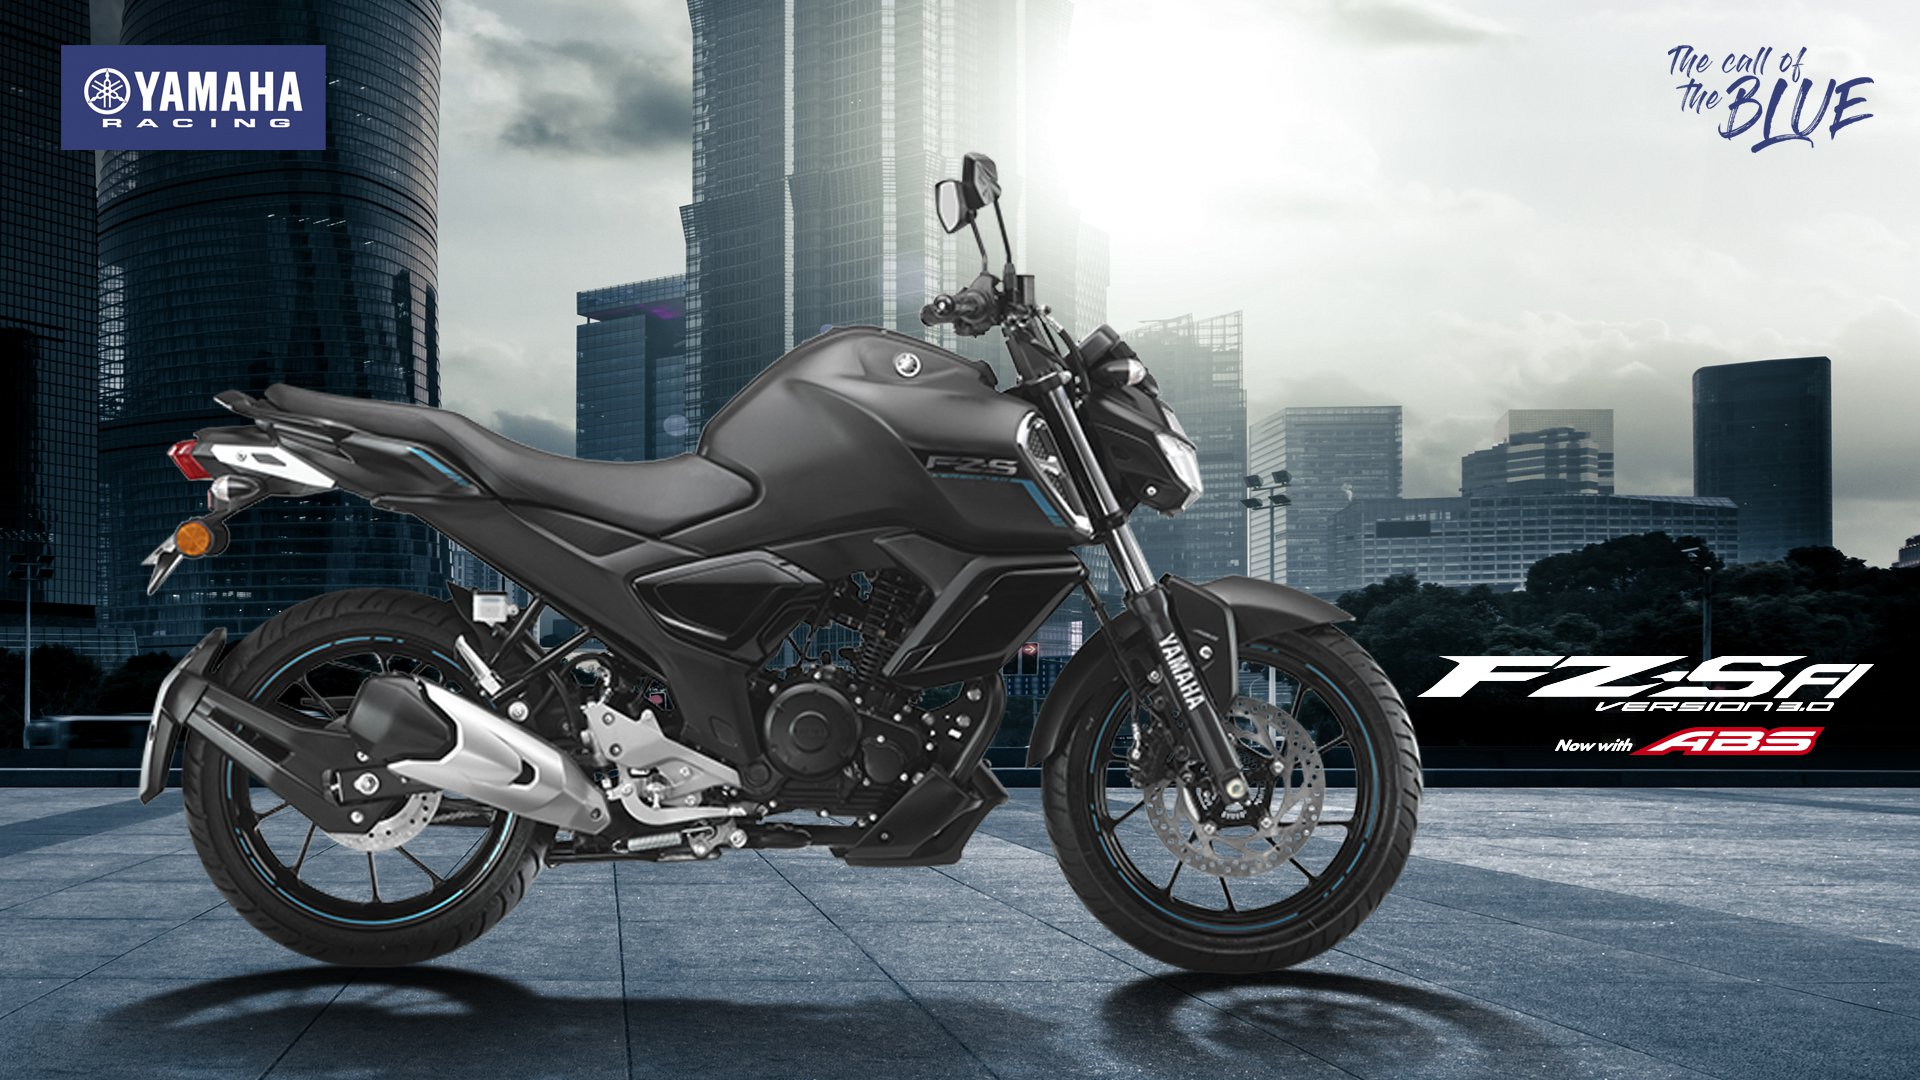 2019 Yamaha FZ / FZ-S Fi V3.0 launched in India